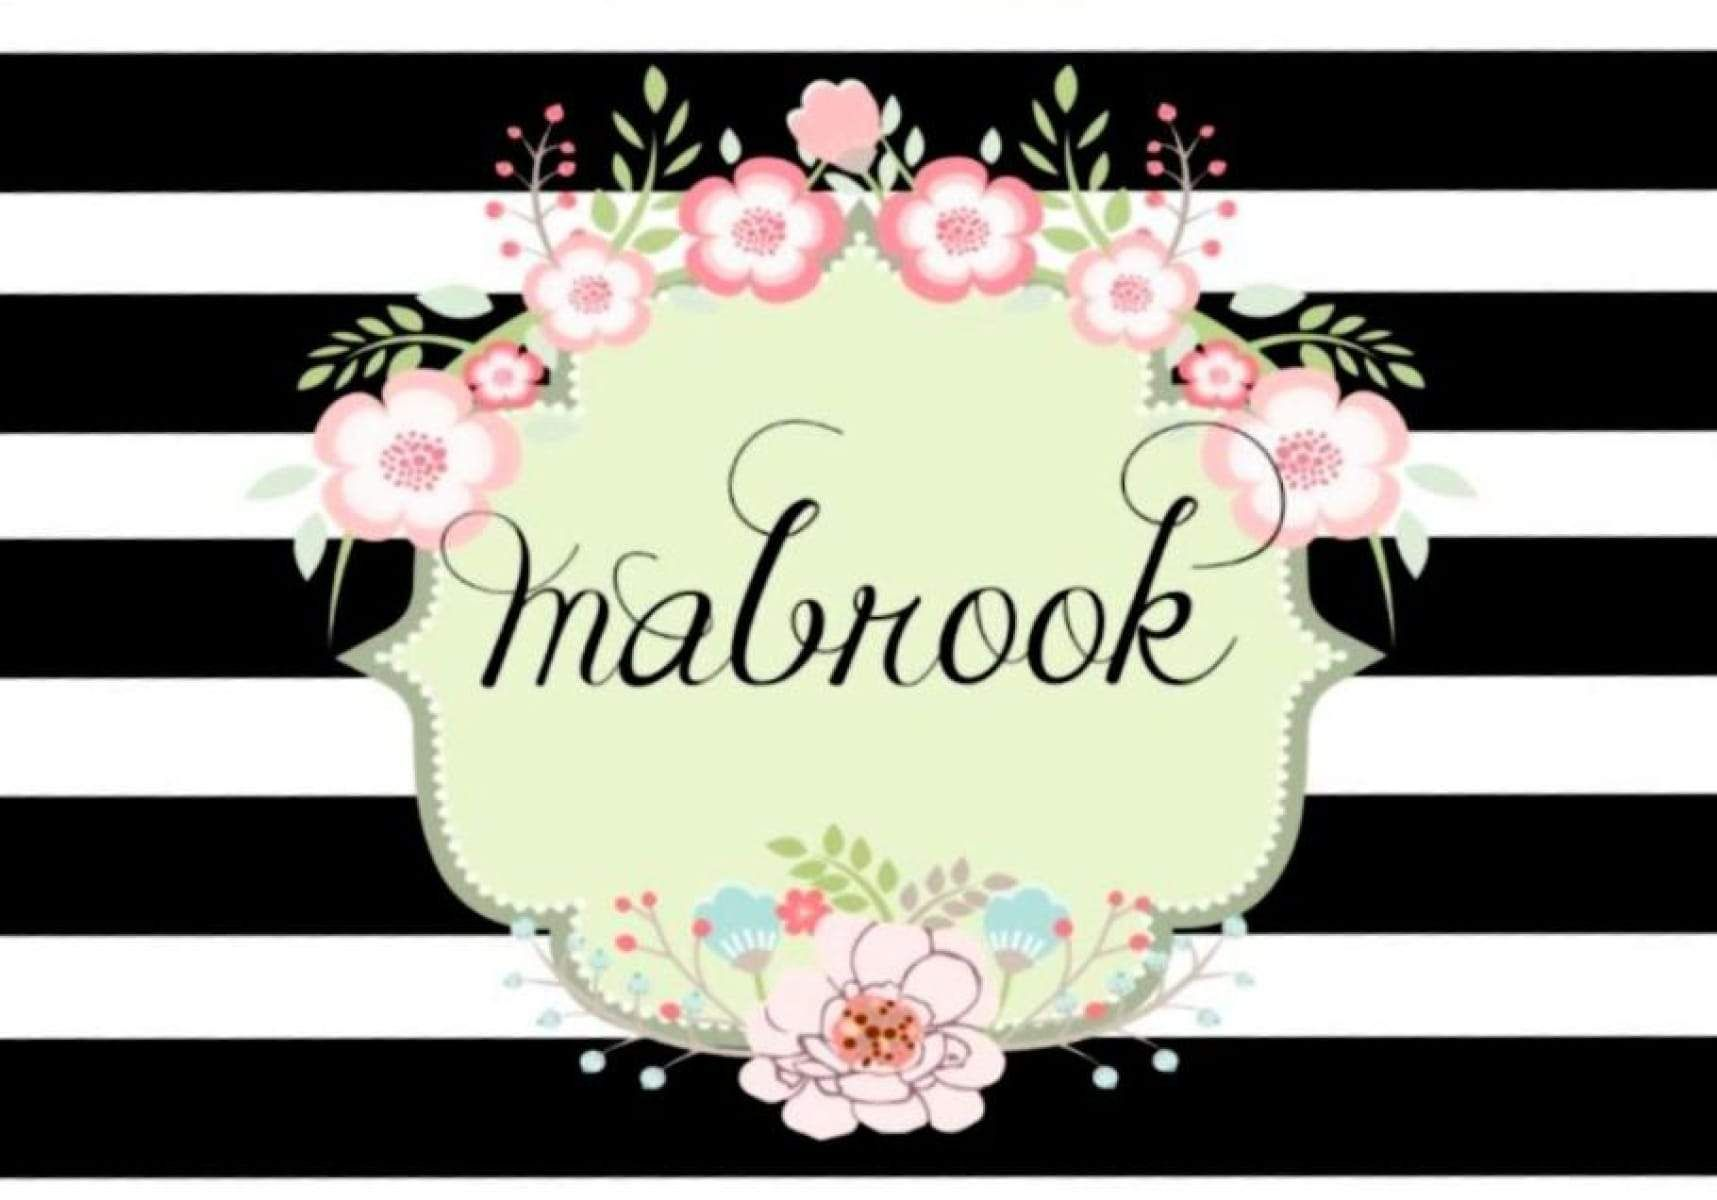 Mabrook Floral Card Floral Cards Silhouette Cards Cards